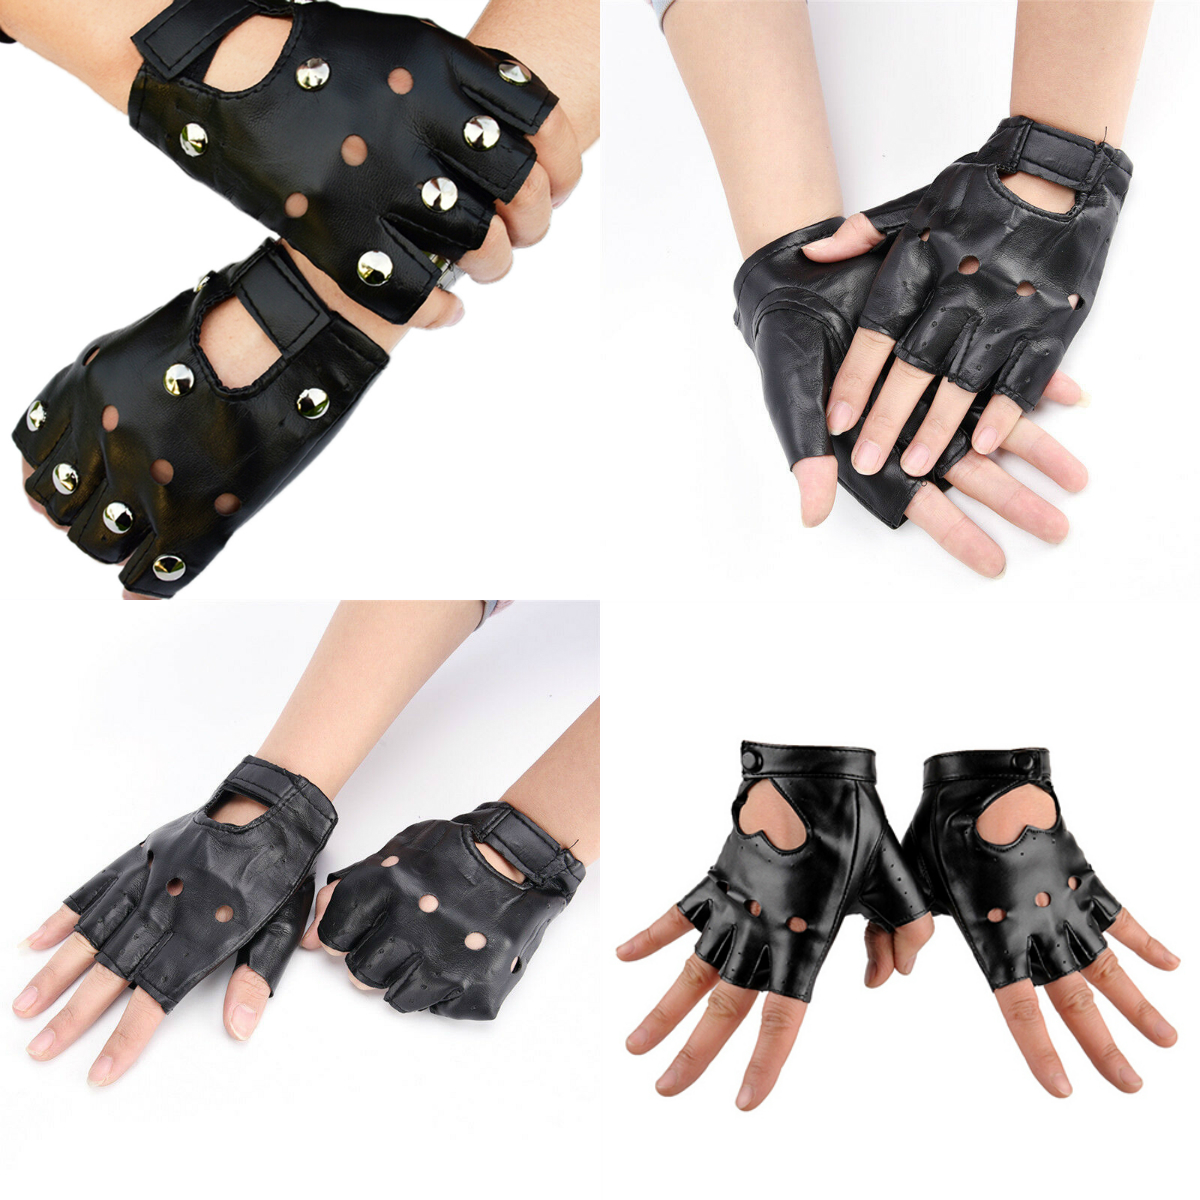 PU Leather Gloves Punk Hip-hop Half-finger Round Tactical Gloves Without Fingers Nail Glove